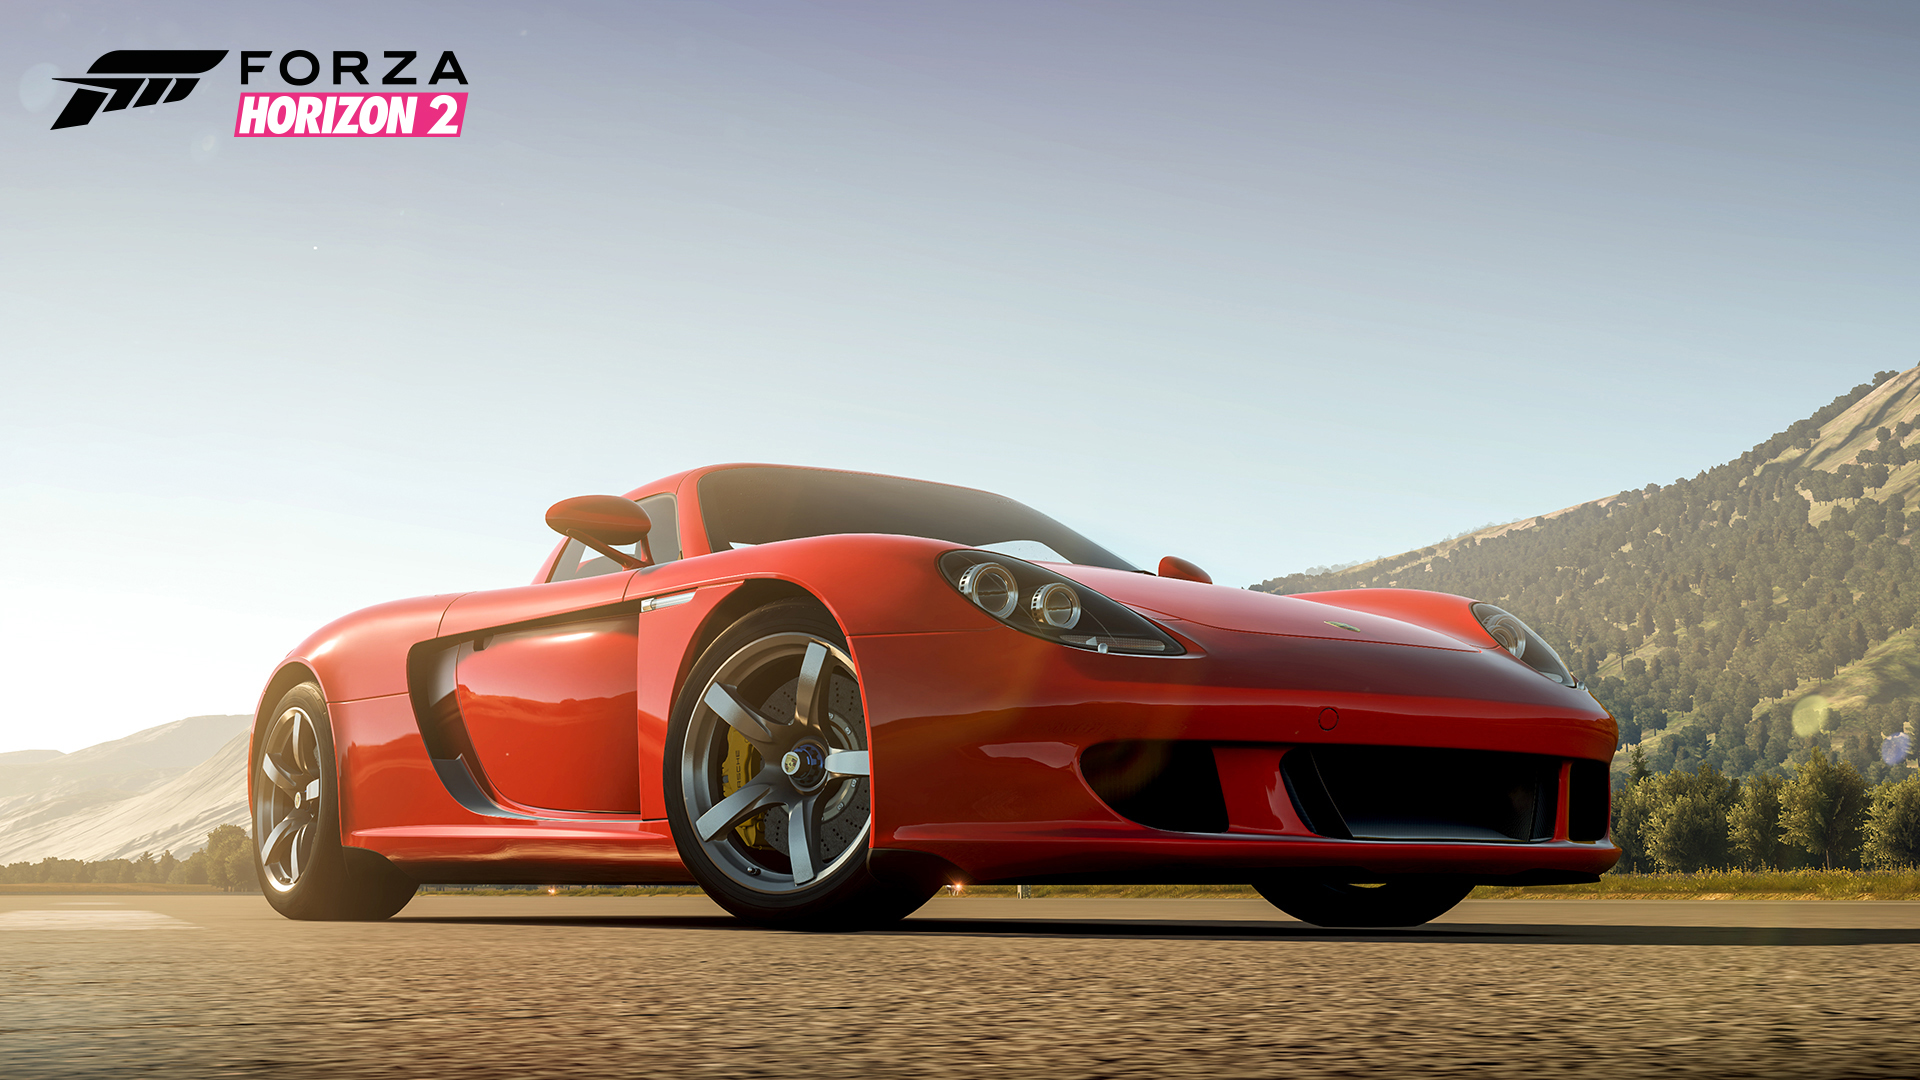 Porsche Joins Forza Horizon 2 Lineup with 10 Cars